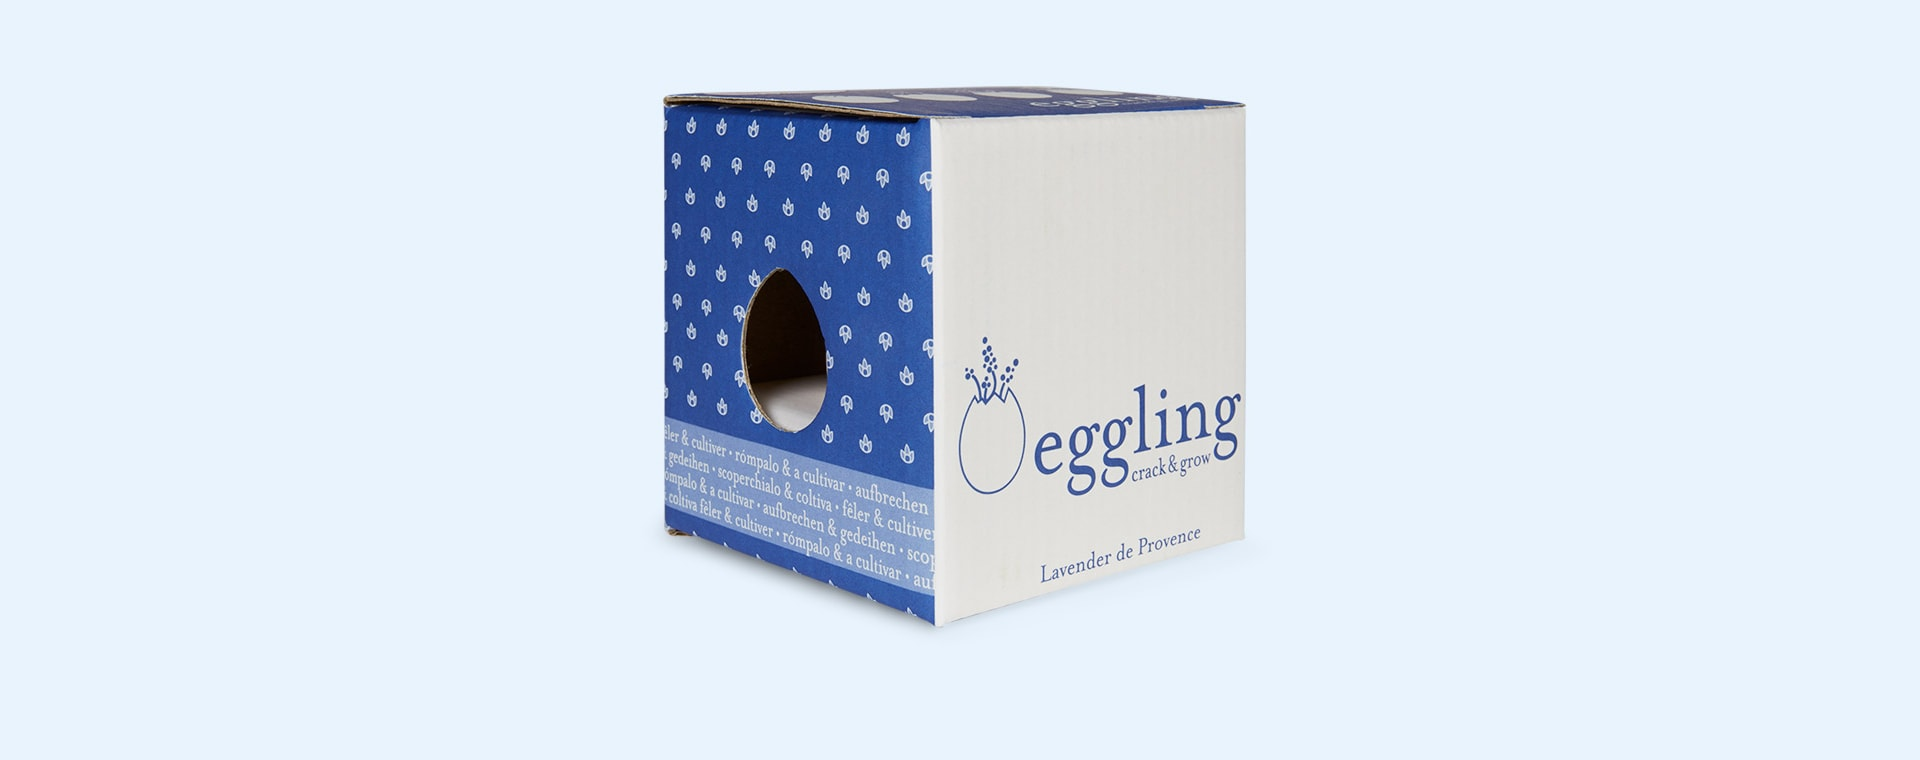 Lavender Noted Eggling Crack & Grow